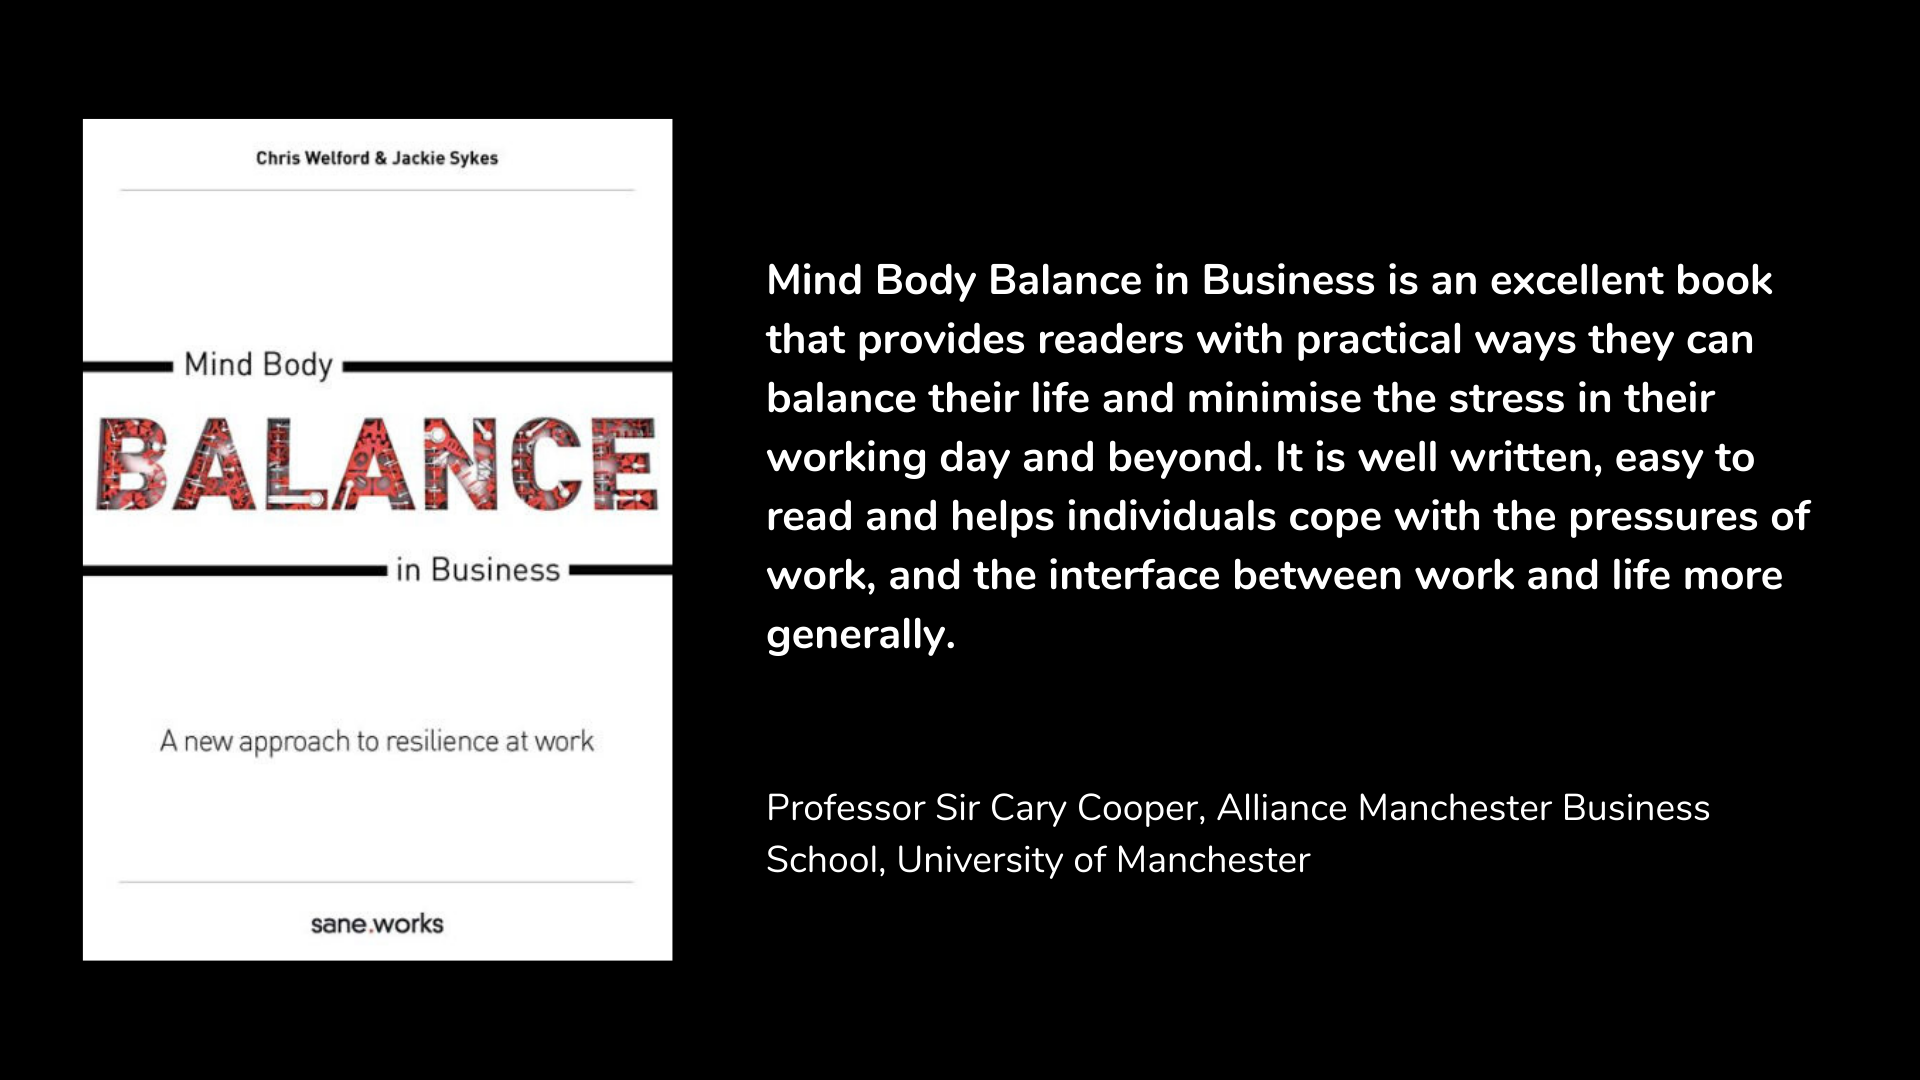 Mind Body Balance in Business: A New Approach To Resilience At Work